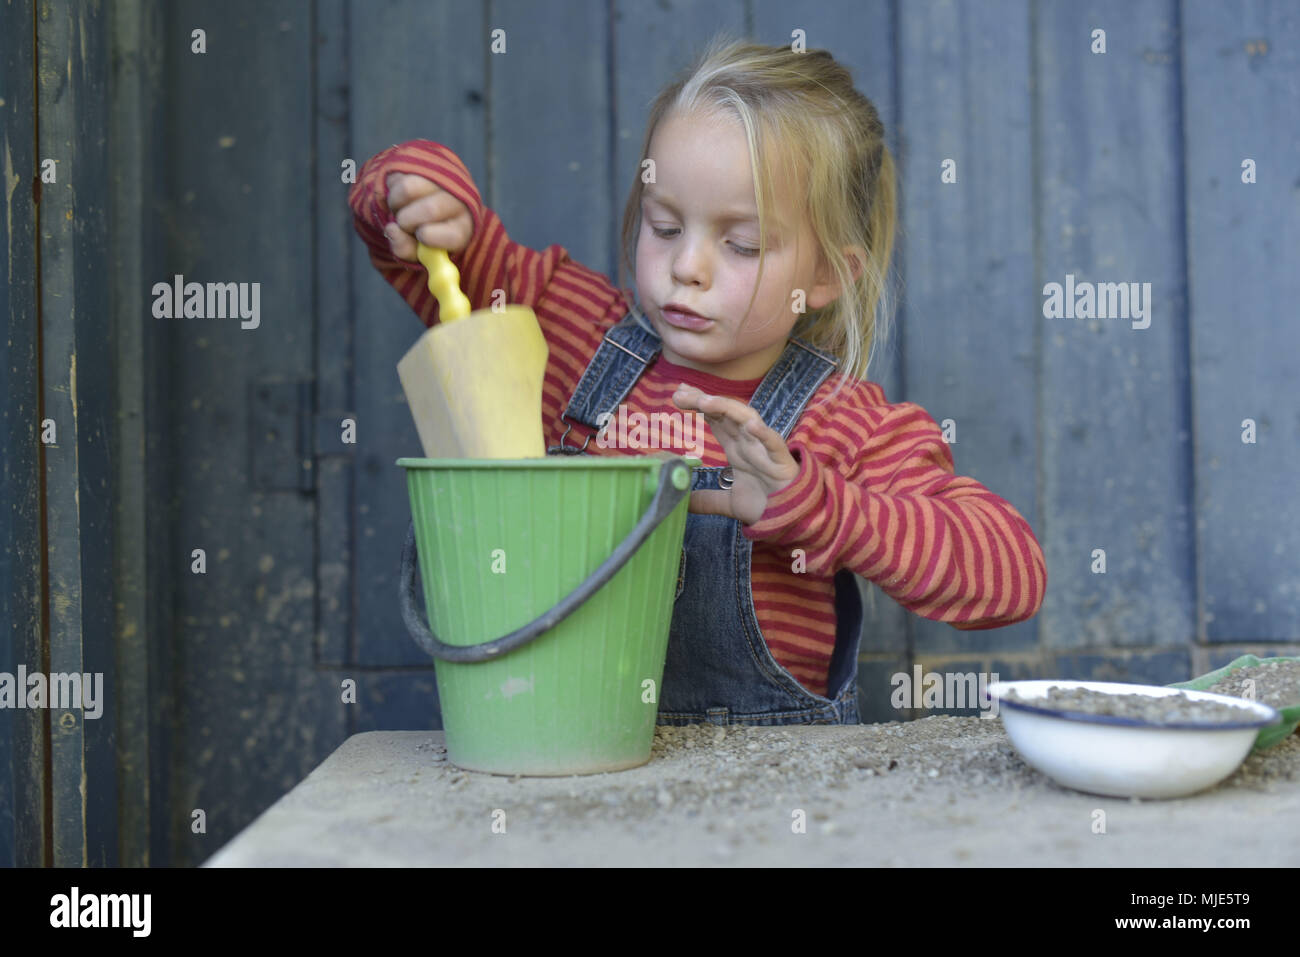 Girl, Sand toys, concentrate, - Stock Image